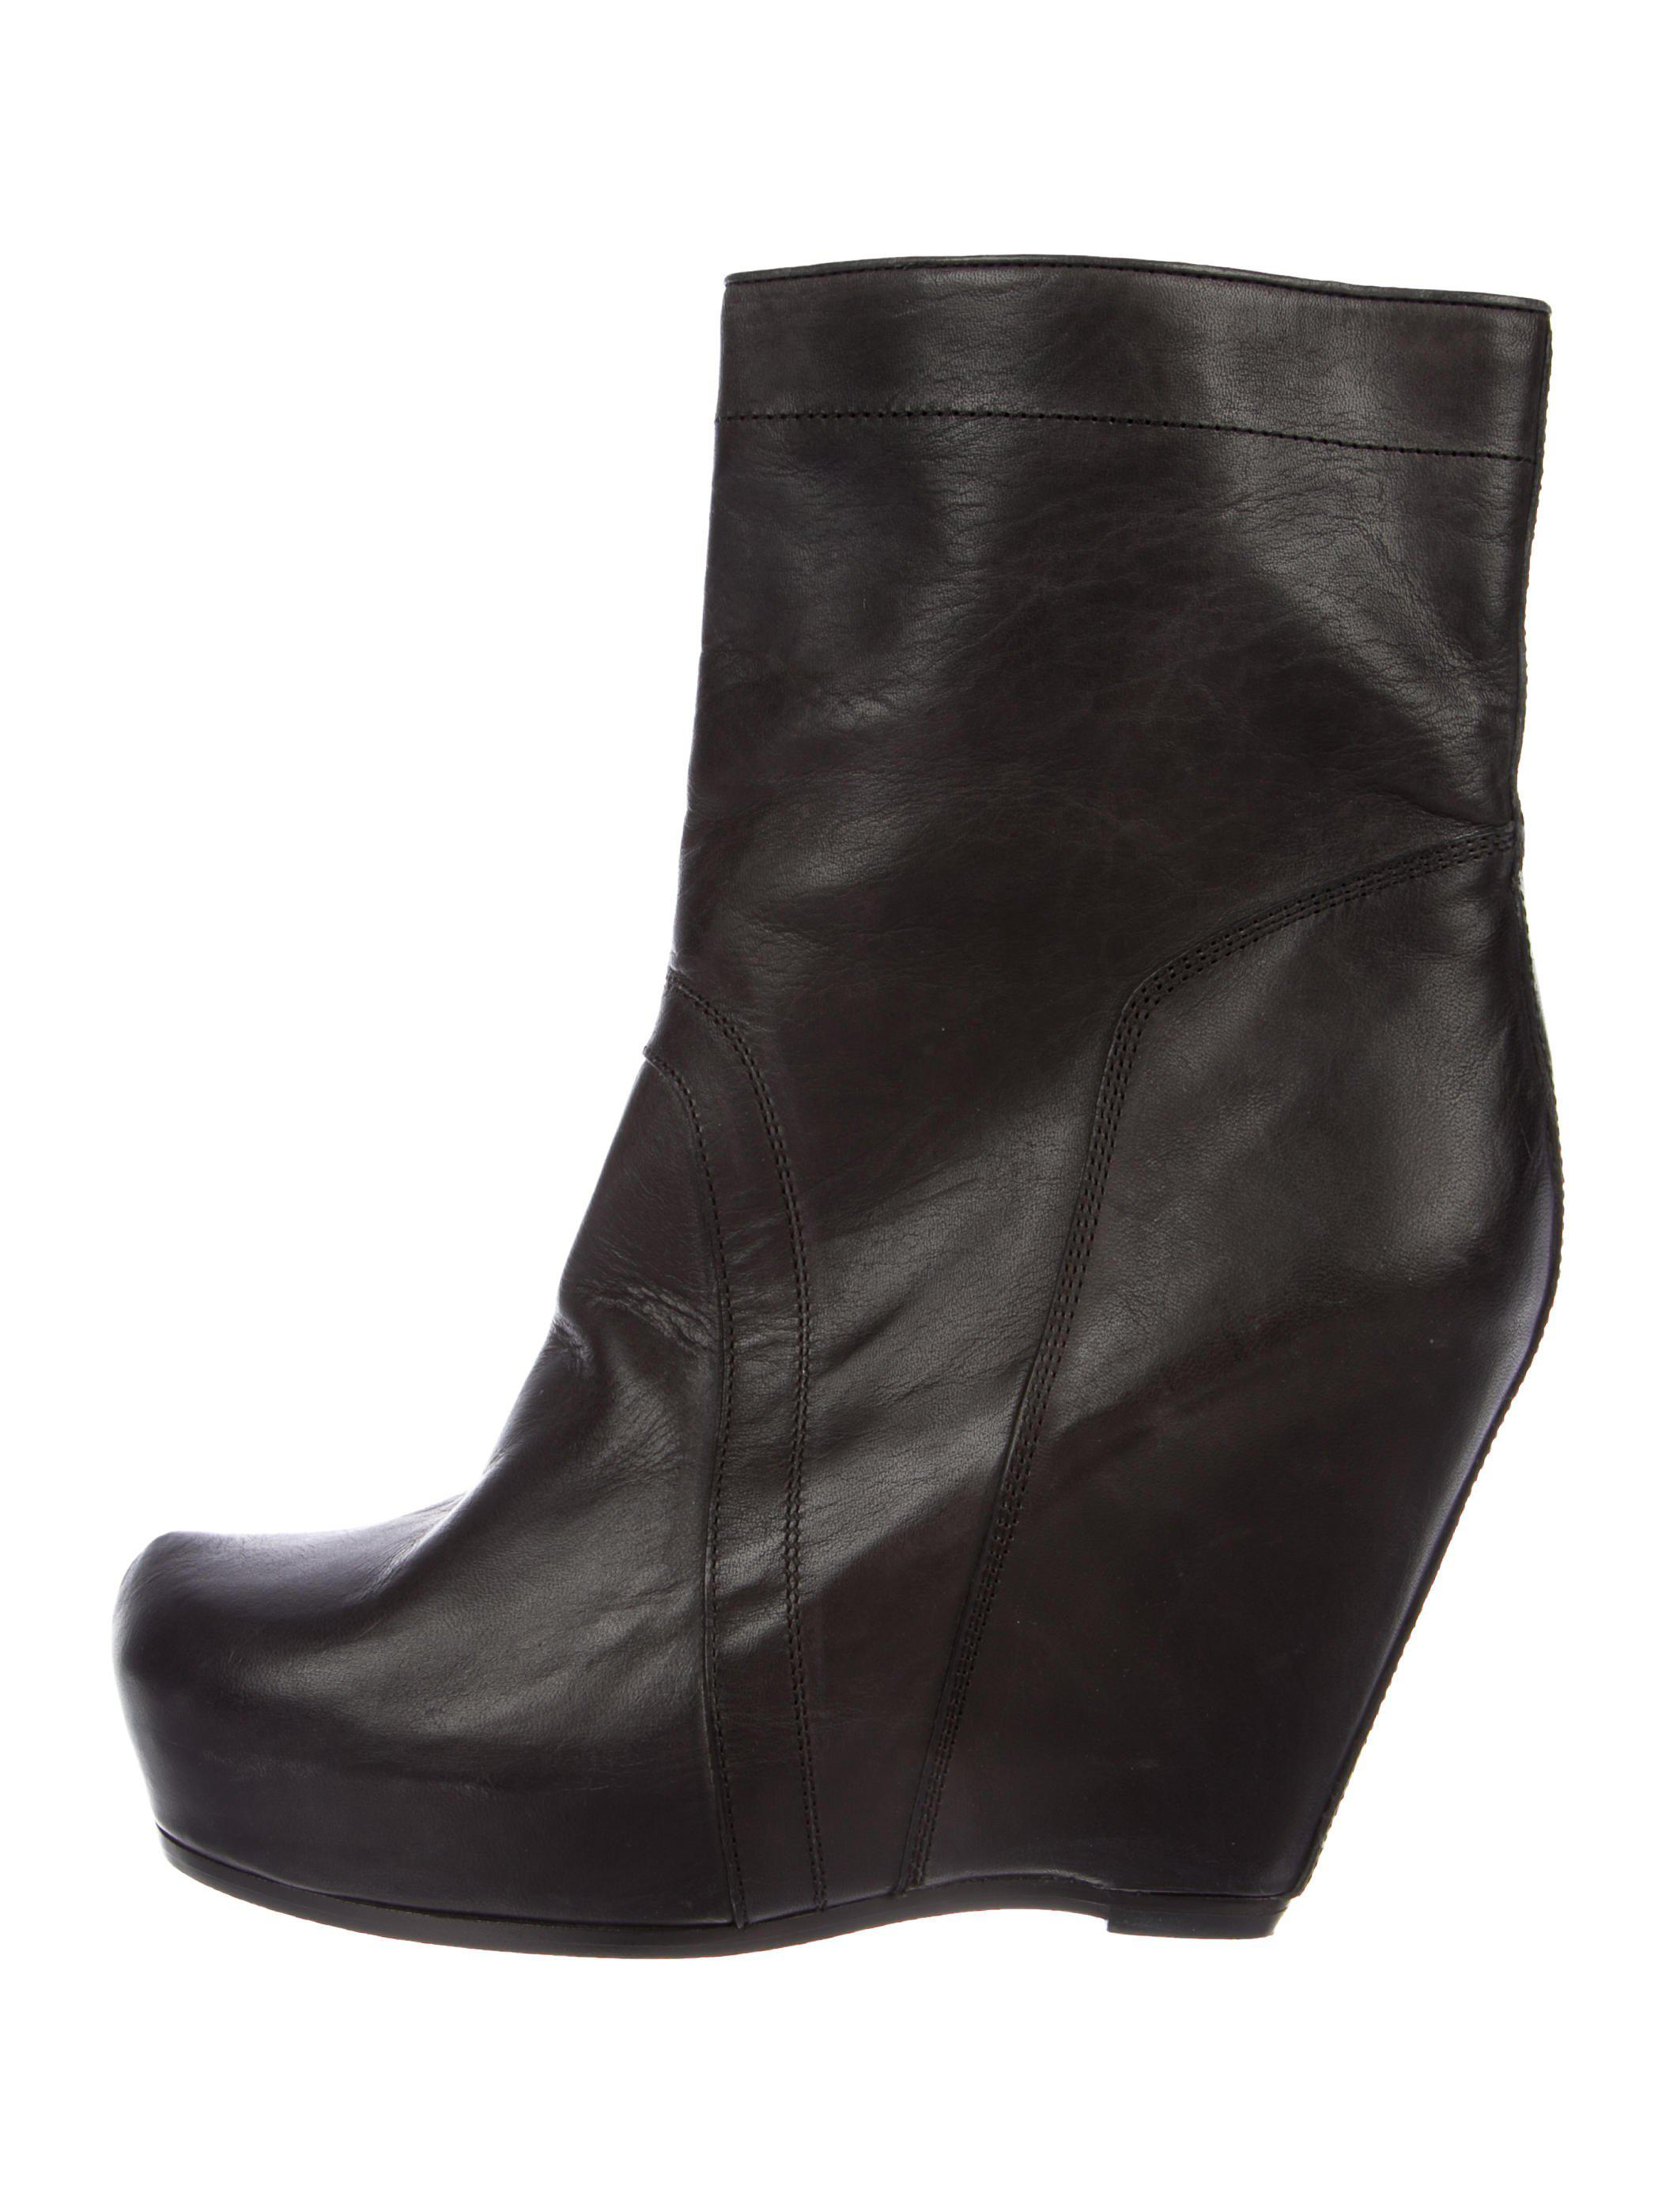 fb39868aa0b6 Lyst - Rick Owens Platform Wedge Ankle Boots in Black